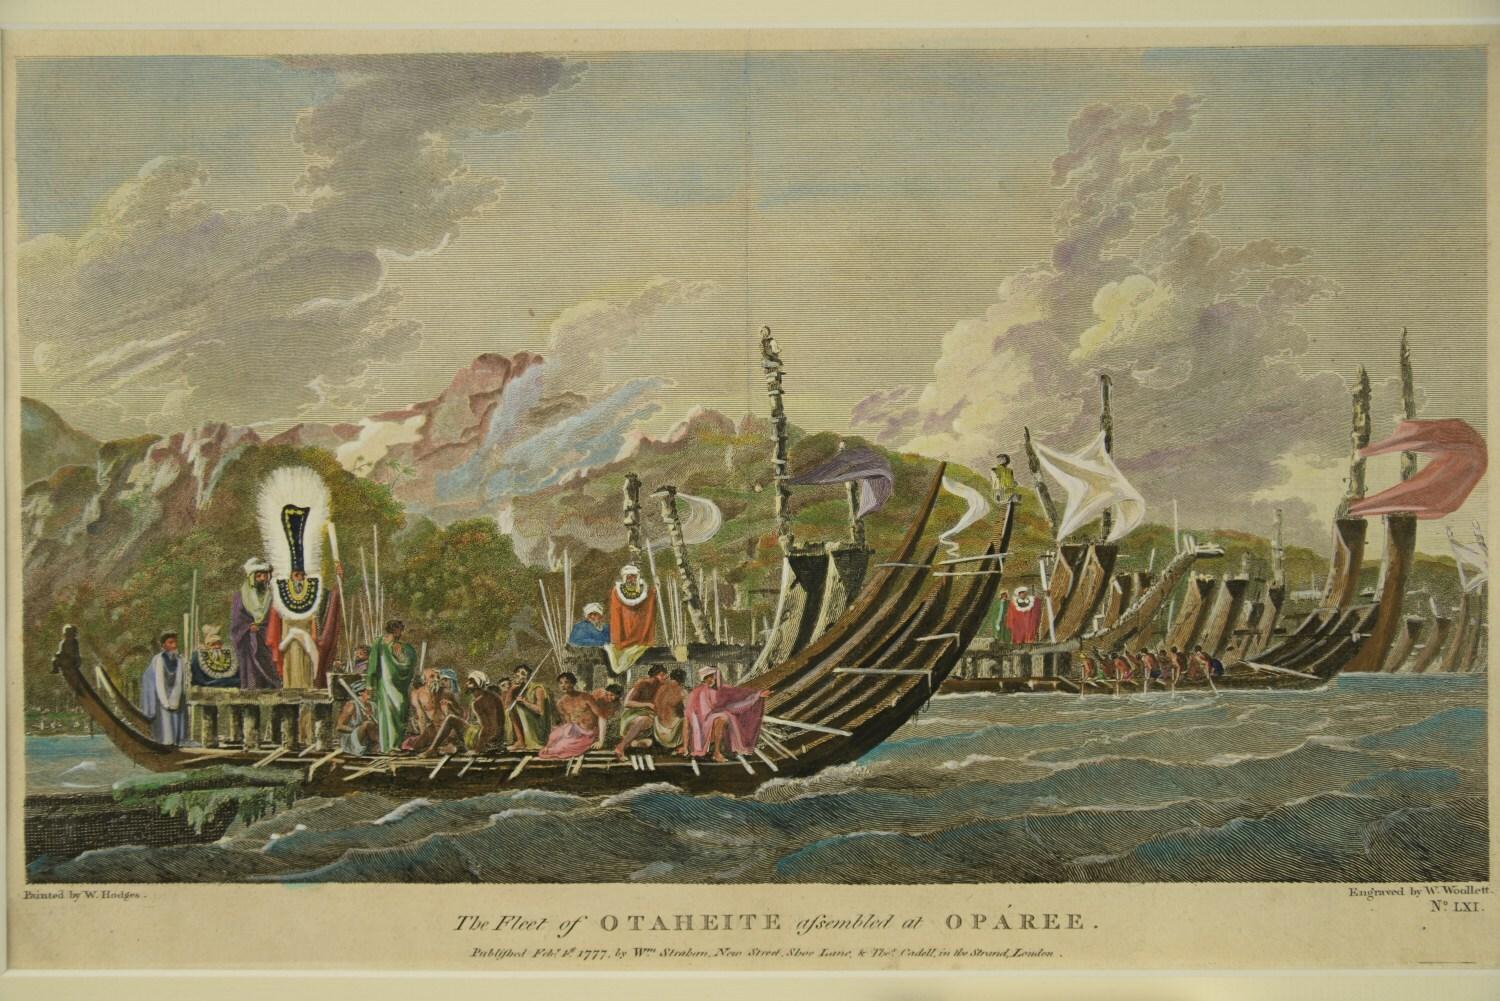 The fleet of OTAHEITE assembled at OPAREE von William Hodges